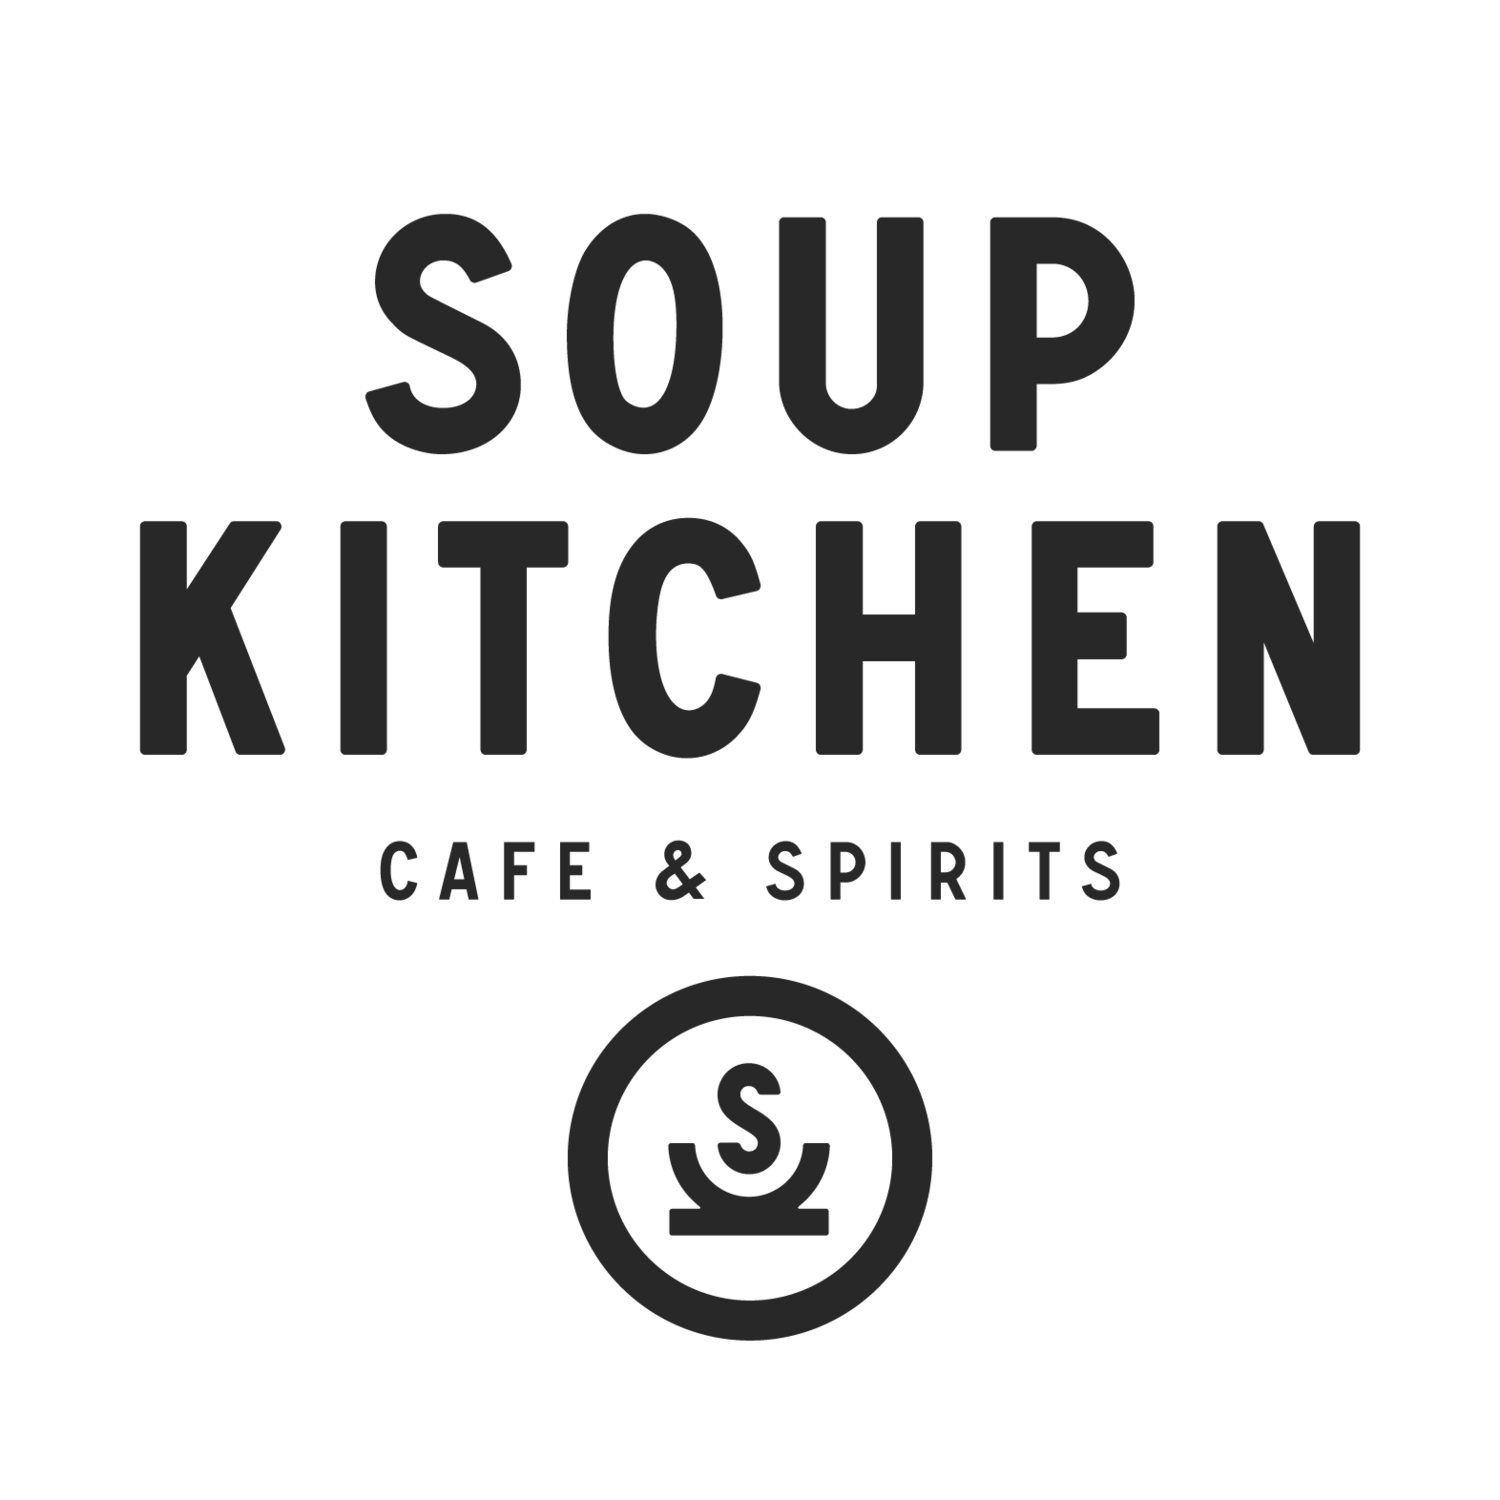 Soup kitchen png. Cafe